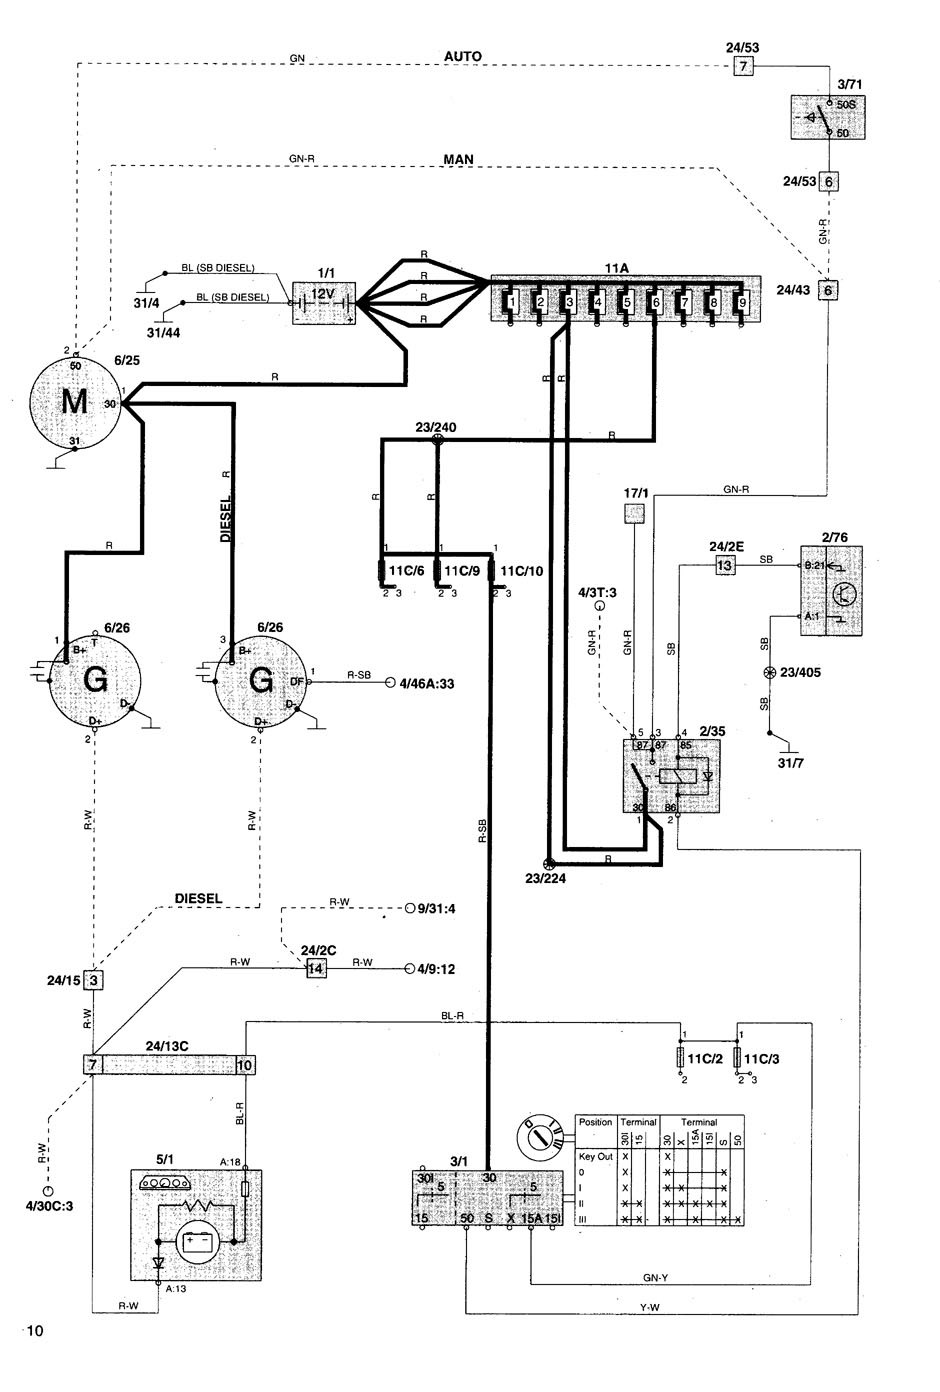 superior broom wiring diagrams hsiieoxo southdarfurradio info u2022 rh hsiieoxo southdarfurradio info